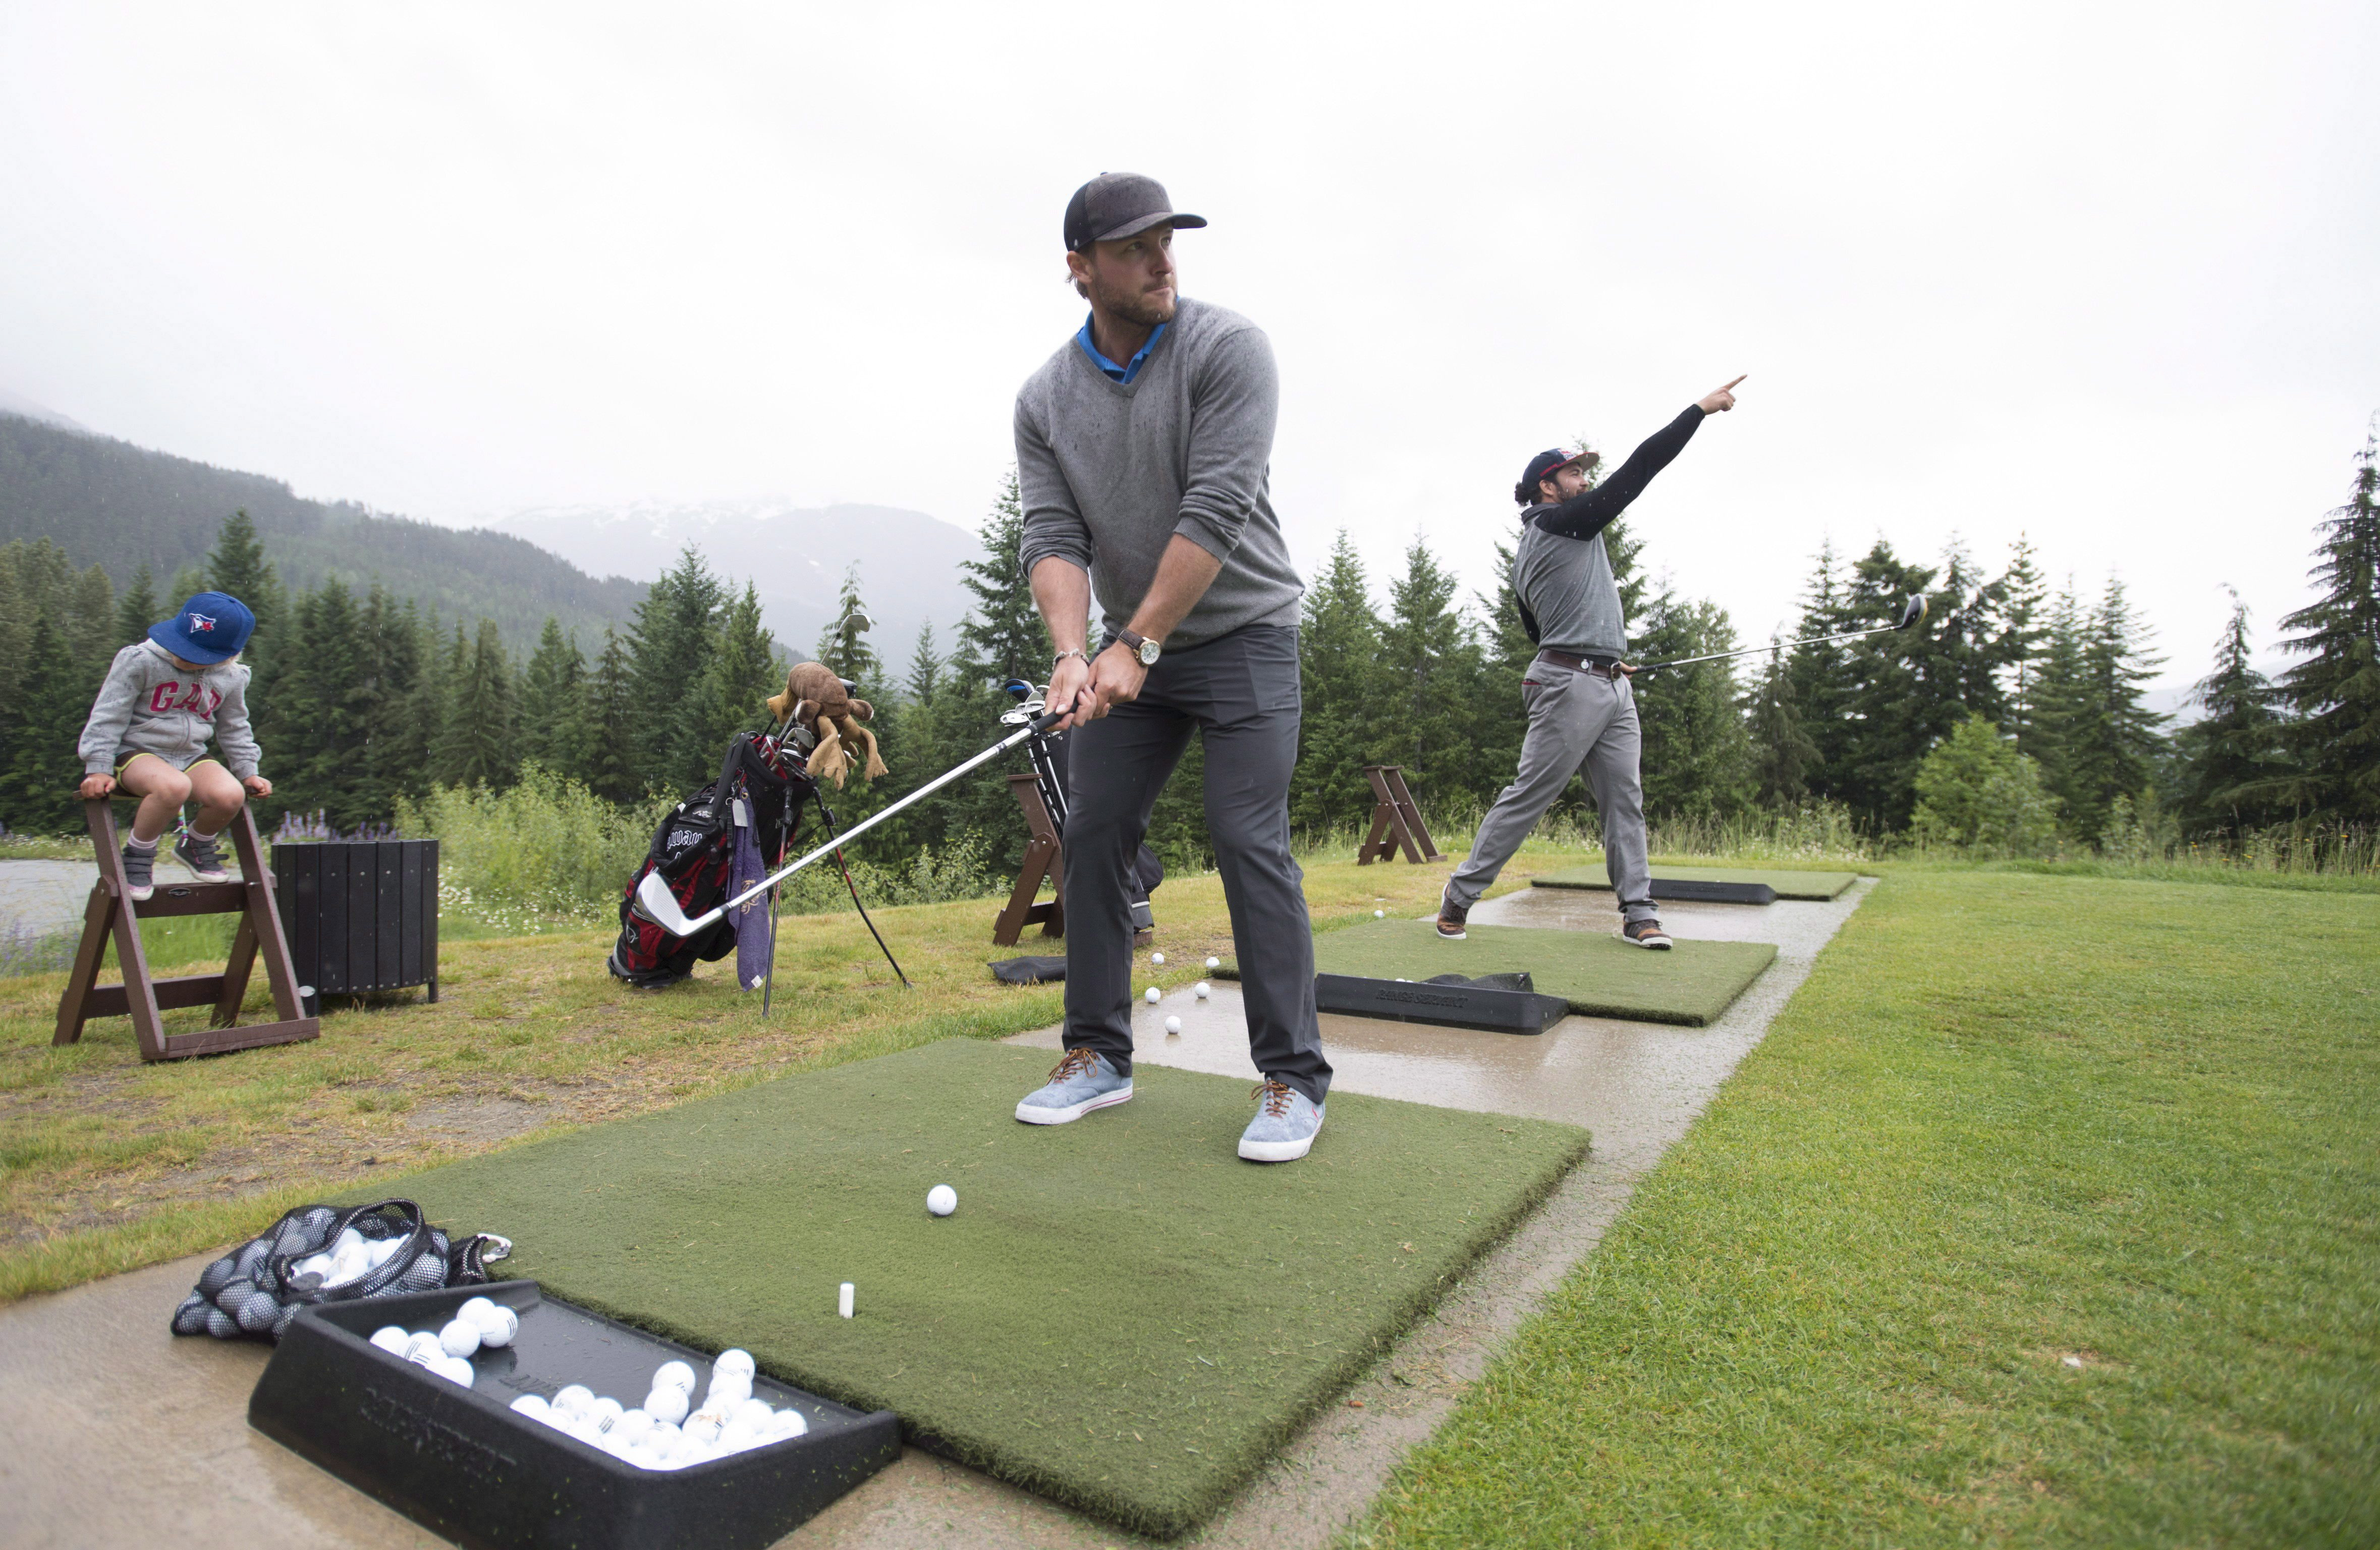 Bobsled athletes Chris Spring, right, and Justin Kripps hit shots at the Fairmont driving range in Whistler, B.C., Wednesday, June, 8, 2016. Spring and Kripps have taken up golf this summer as part of their training program, with a goal of sharpening focus and improving mental toughness. THE CANADIAN PRESS/Jonathan Hayward